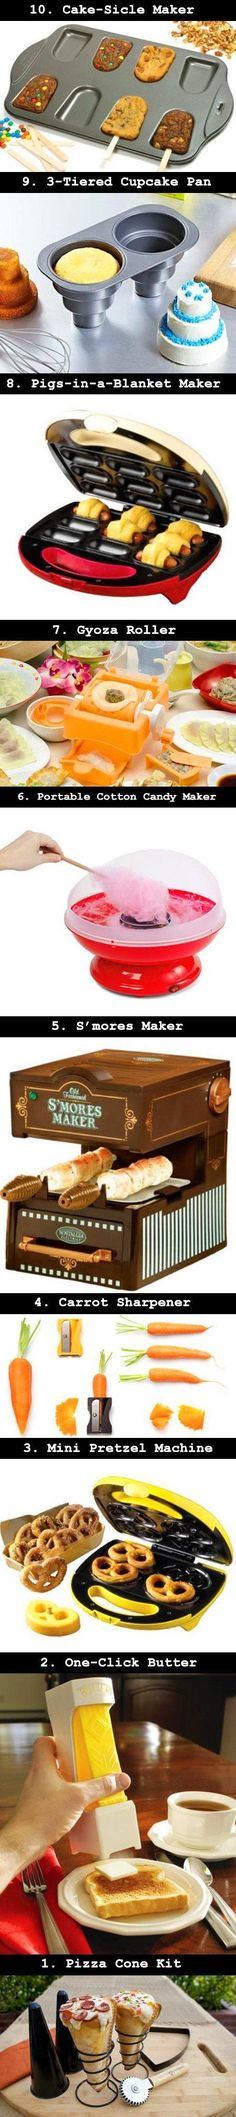 10 Awesome Kitchen Gadgets and Accessories Geeks Would Love (Kitchen Gadgets)